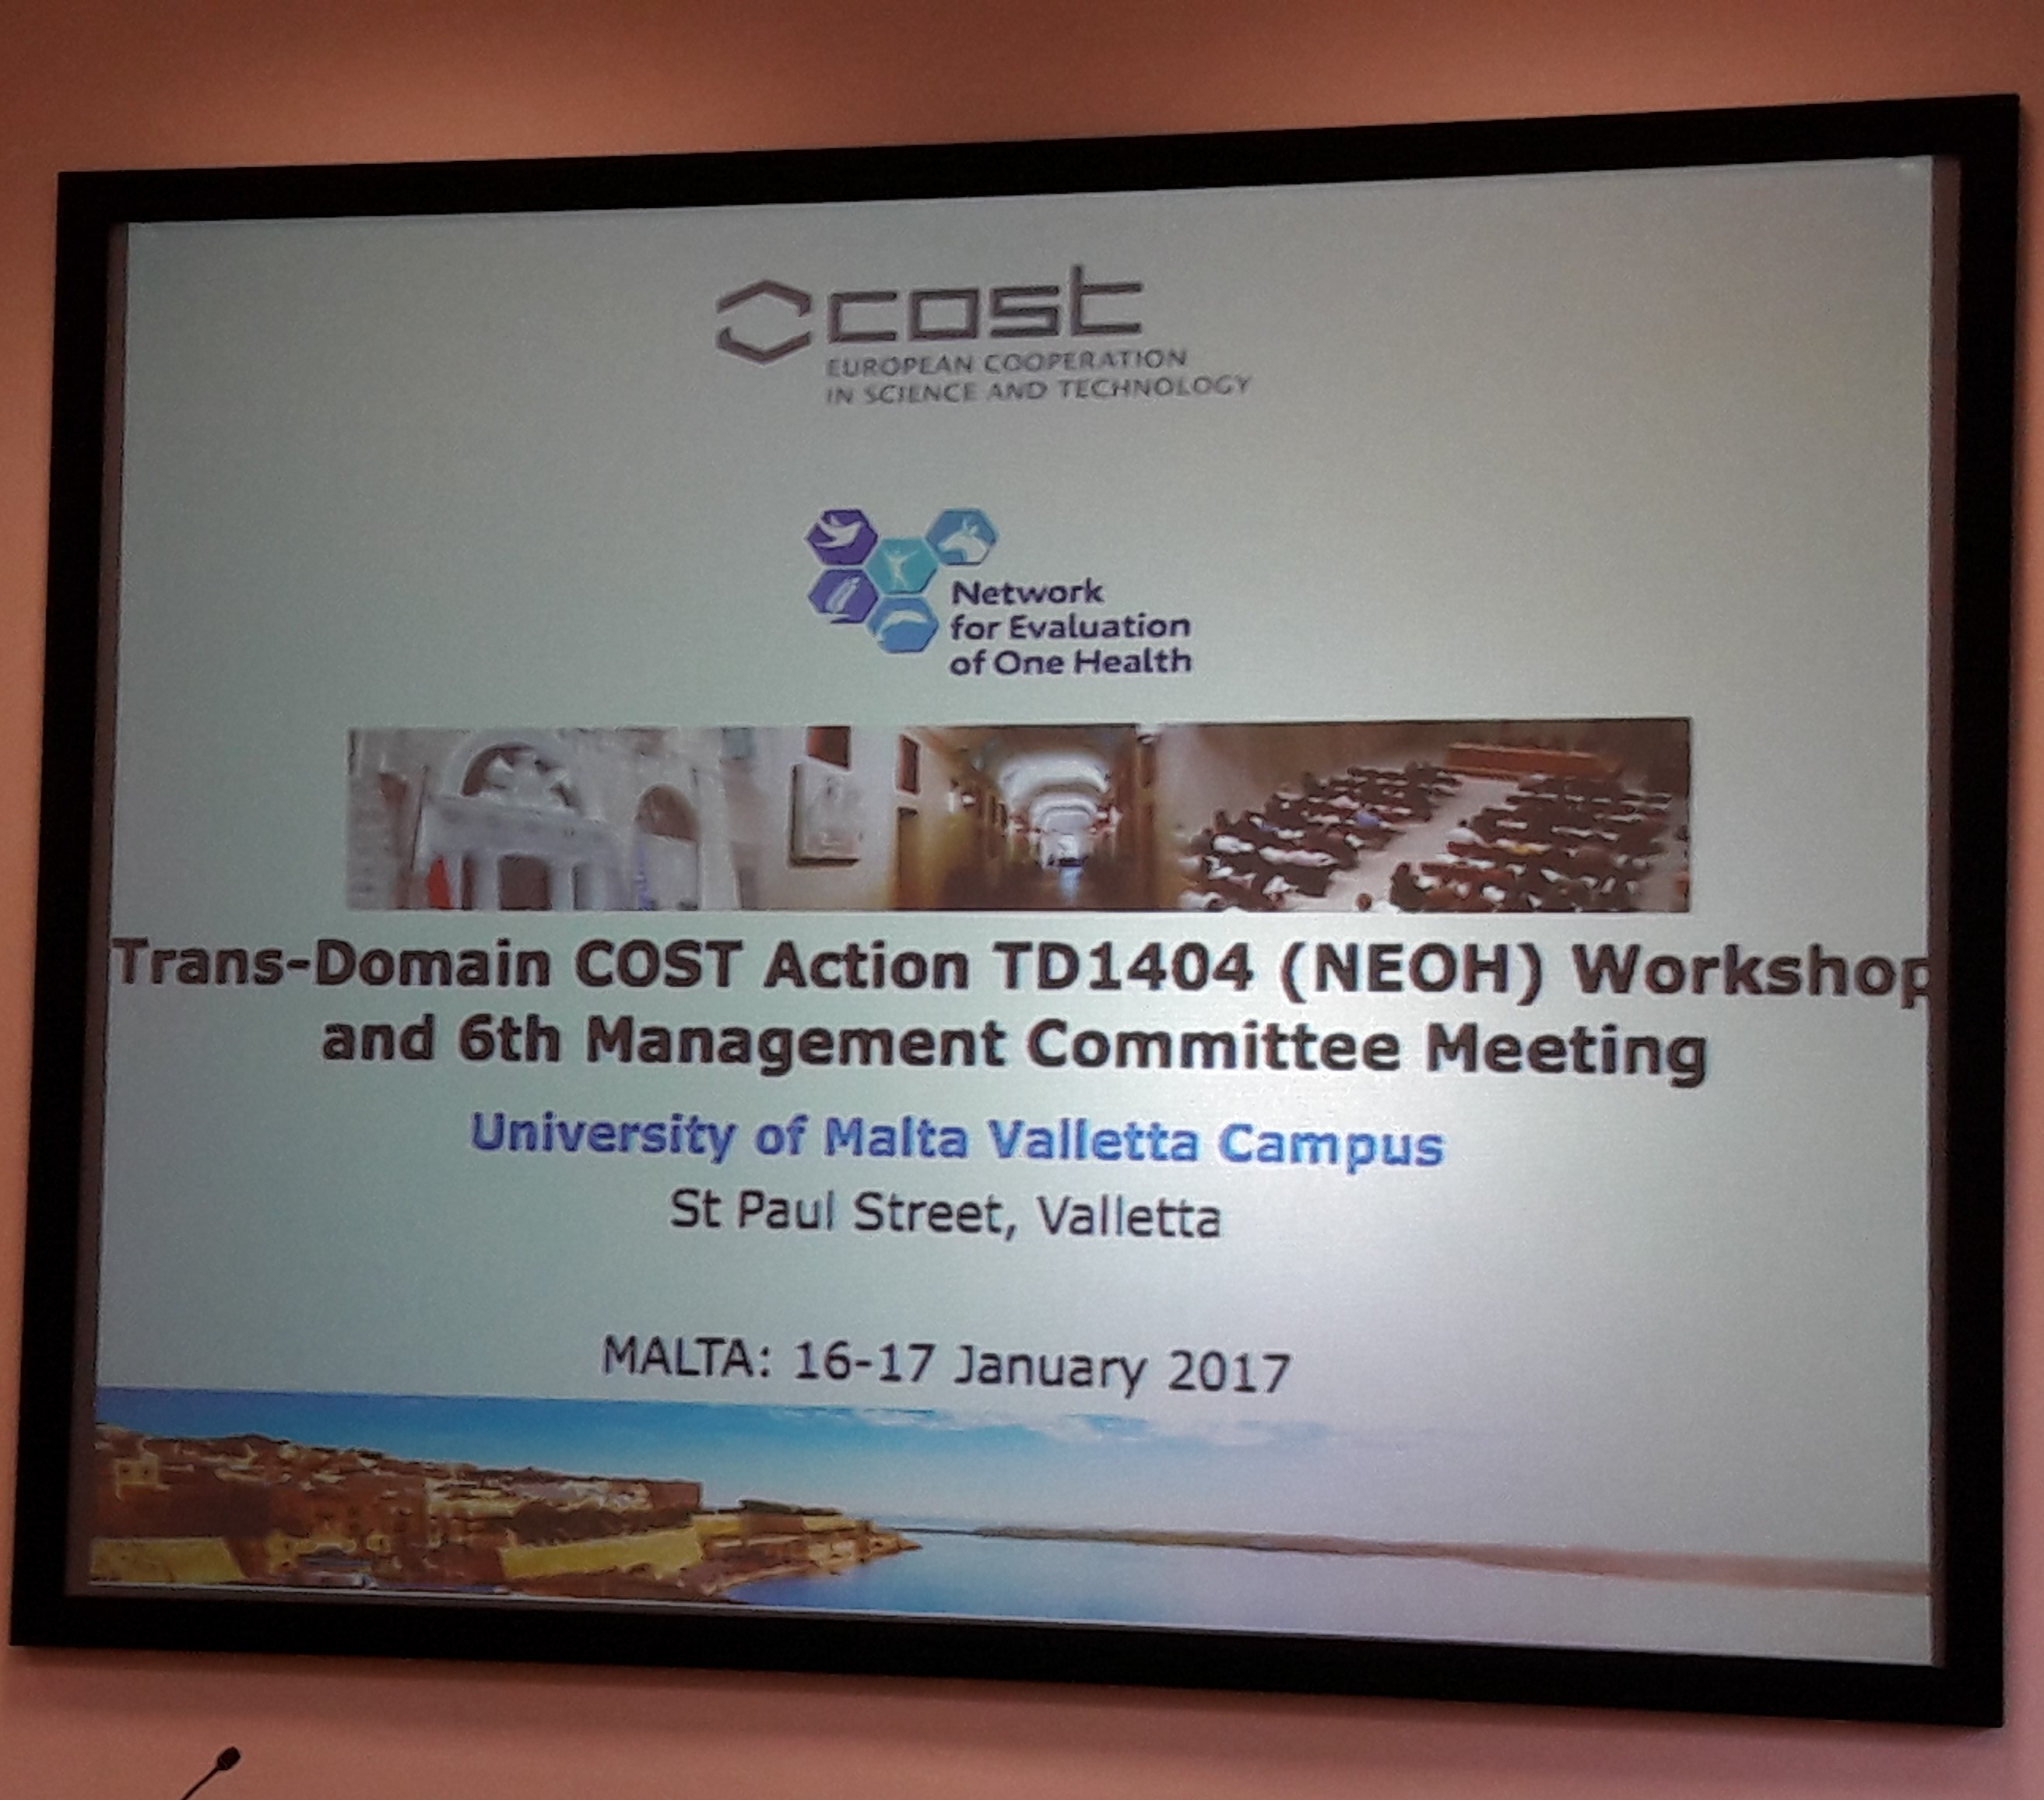 NEOH workshop, Malta, 16-17 January 2017